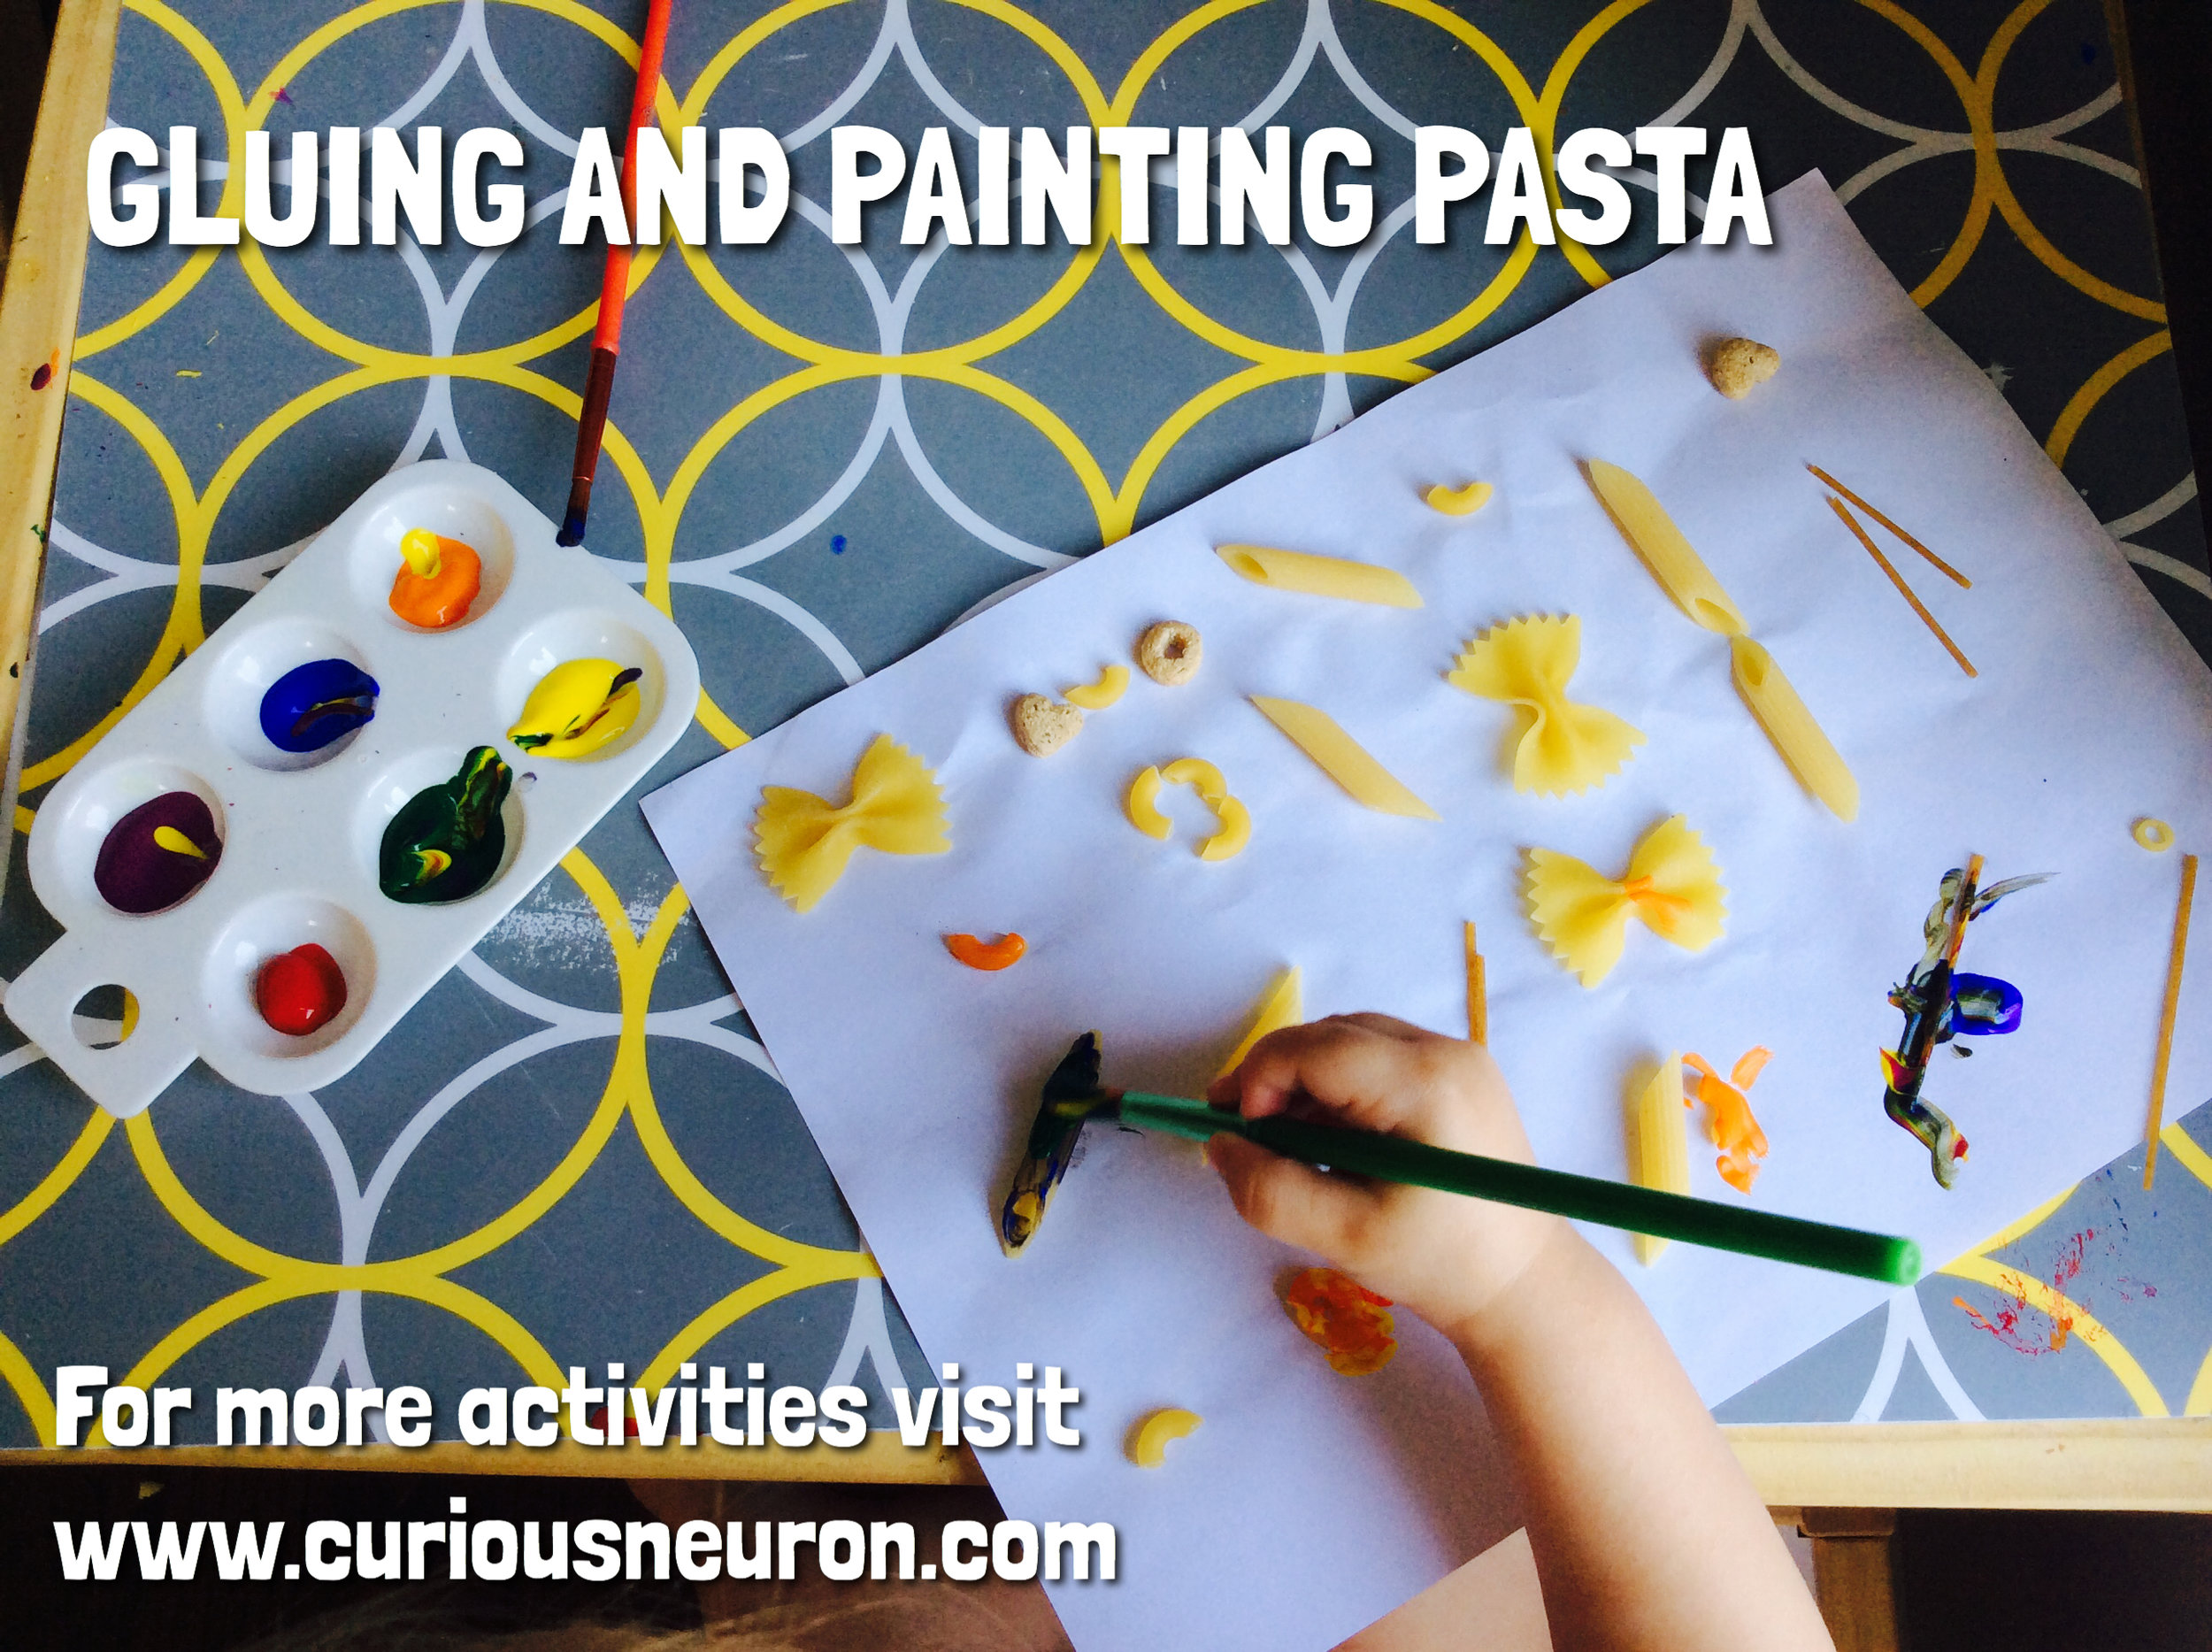 We adding some glue to pasta and pasted them on paper. We then painted them once they dried. Great for developing precision and motor skills.  This is also a great way to teach a child to look for similarities and differences. Which pasta shapes look similar? Do they feel similar? Teaching them to observe and question will help them in school. You can use only tube pasta such as penne and have them create letters using only pasta or they can even spell out their name.